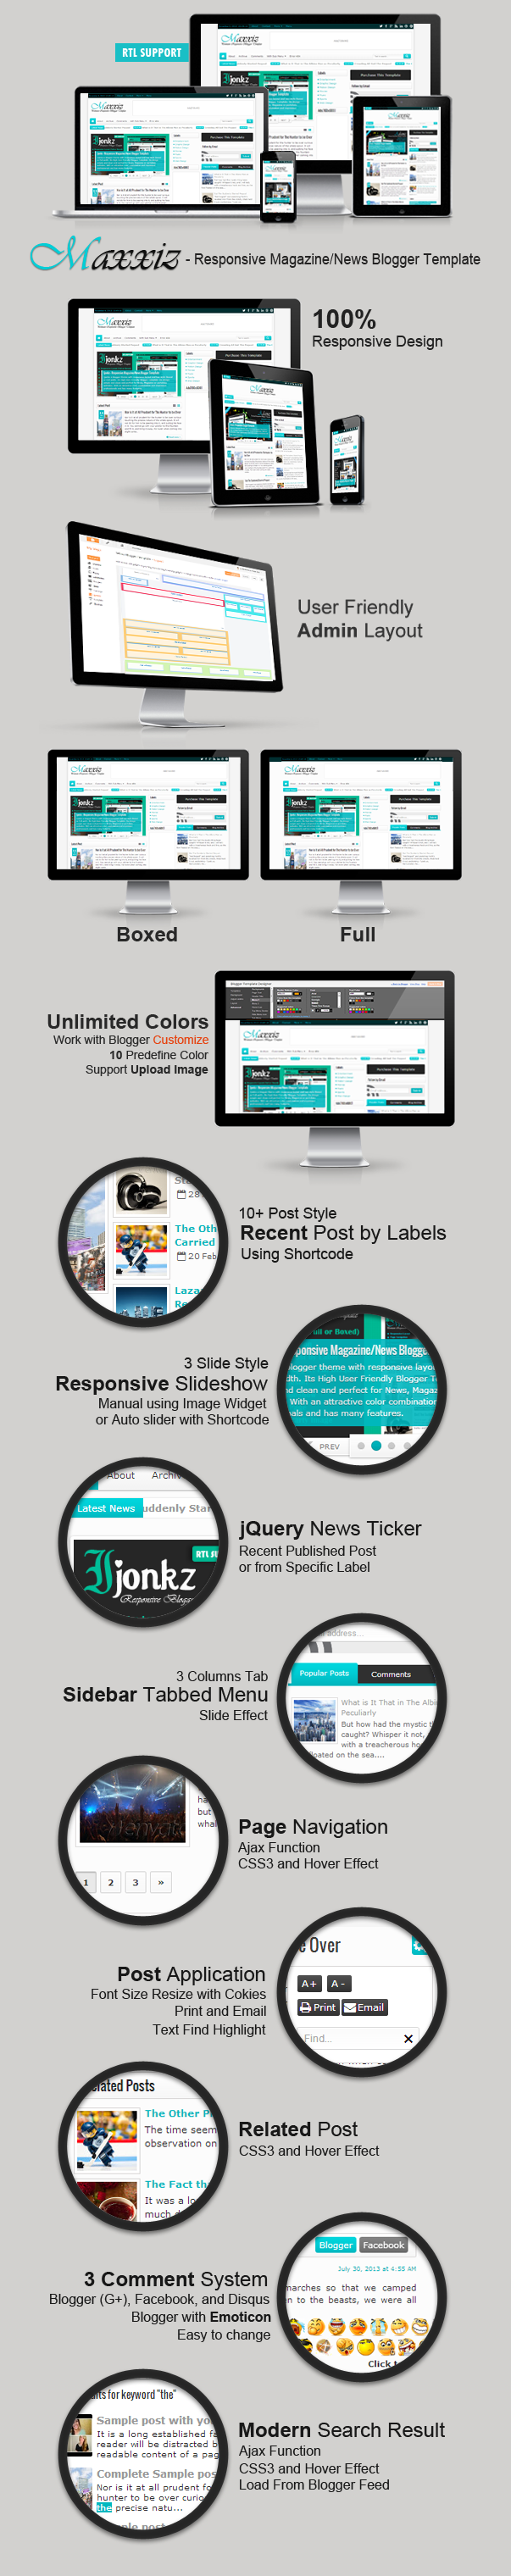 Maxxiz Responsive Magazine/News Blogger Template Features